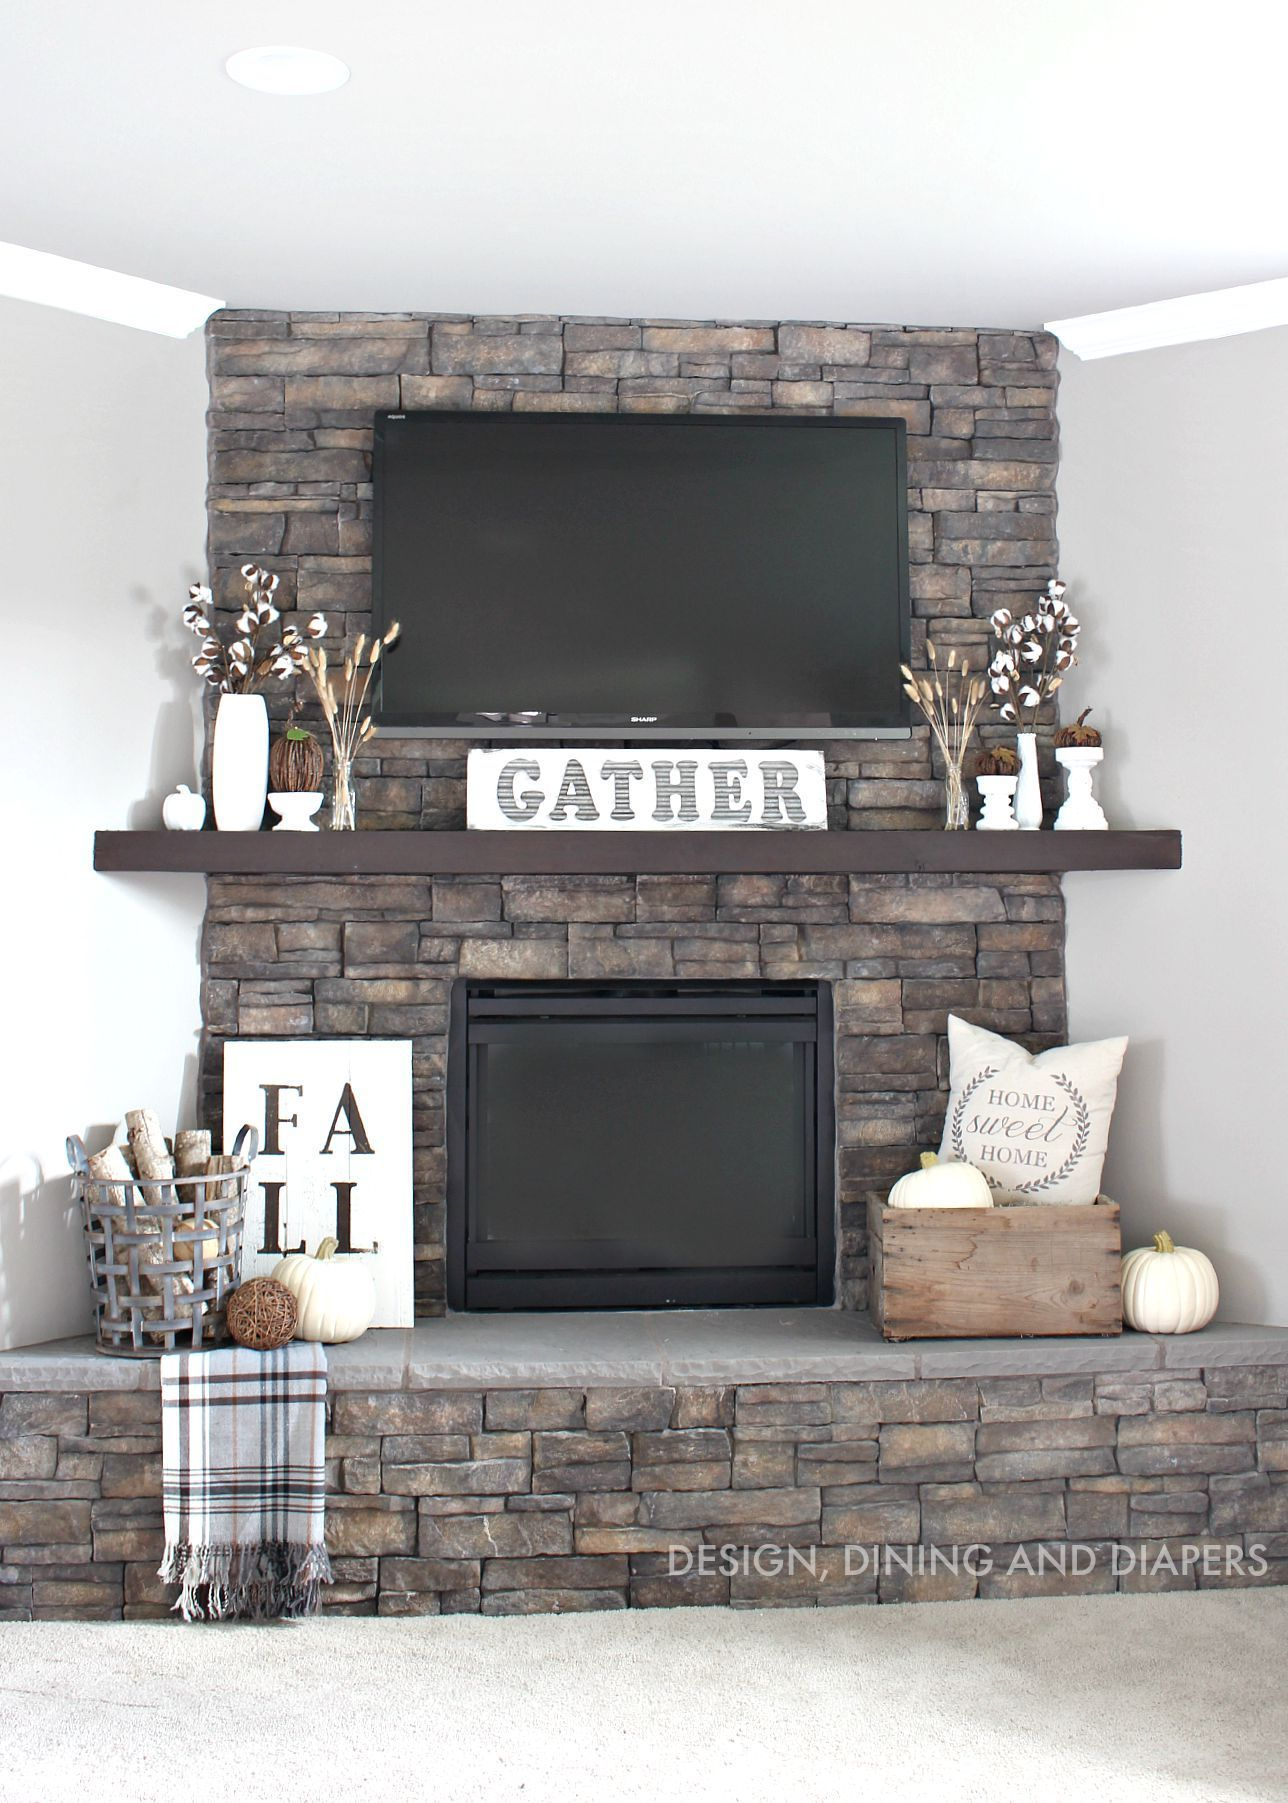 There are many rustic wall decor ideas